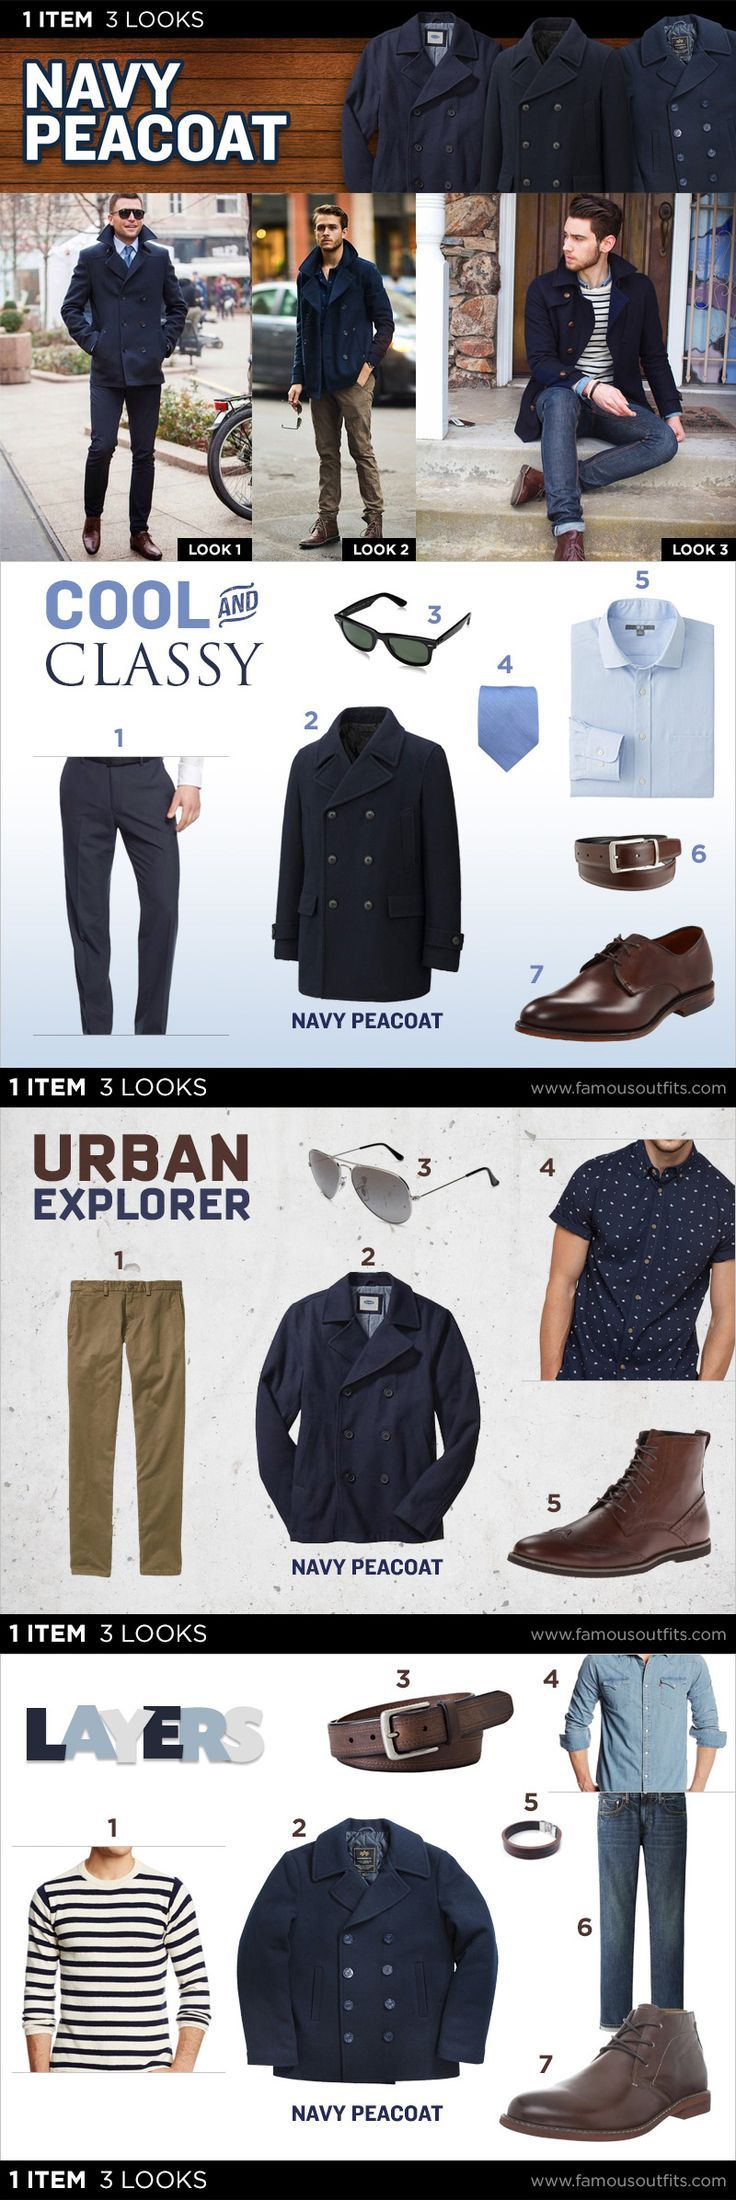 No matter if you have a Peacoat in your closet already, or are considering one as the winter season draws -- check out some great getups from Famous Outfits that take 1 item, but give you 3 looks.: